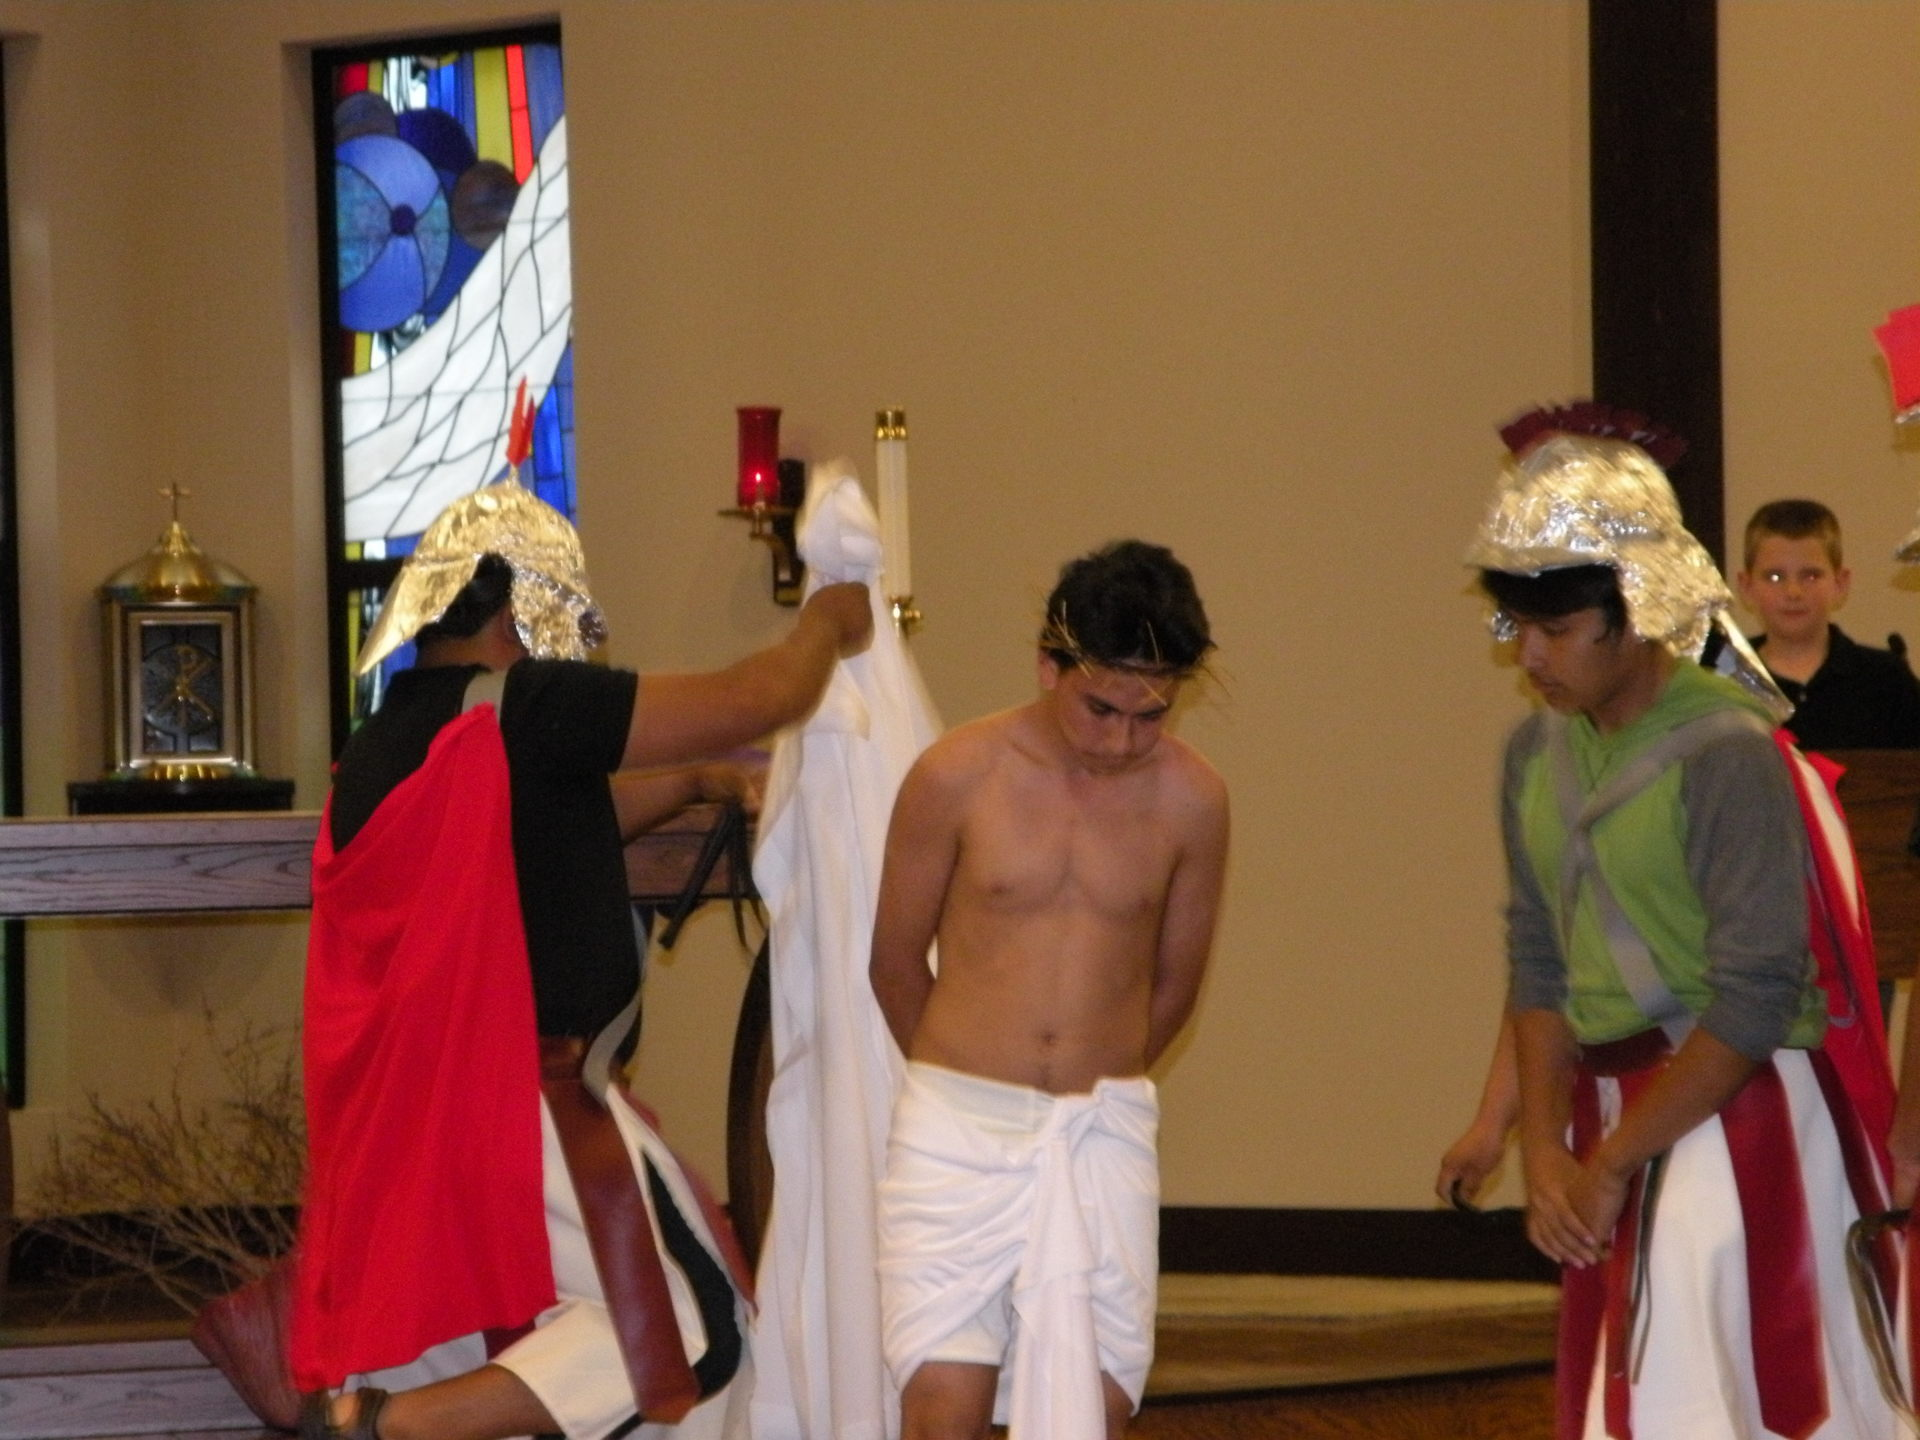 Jesus is stripped of his clothes.